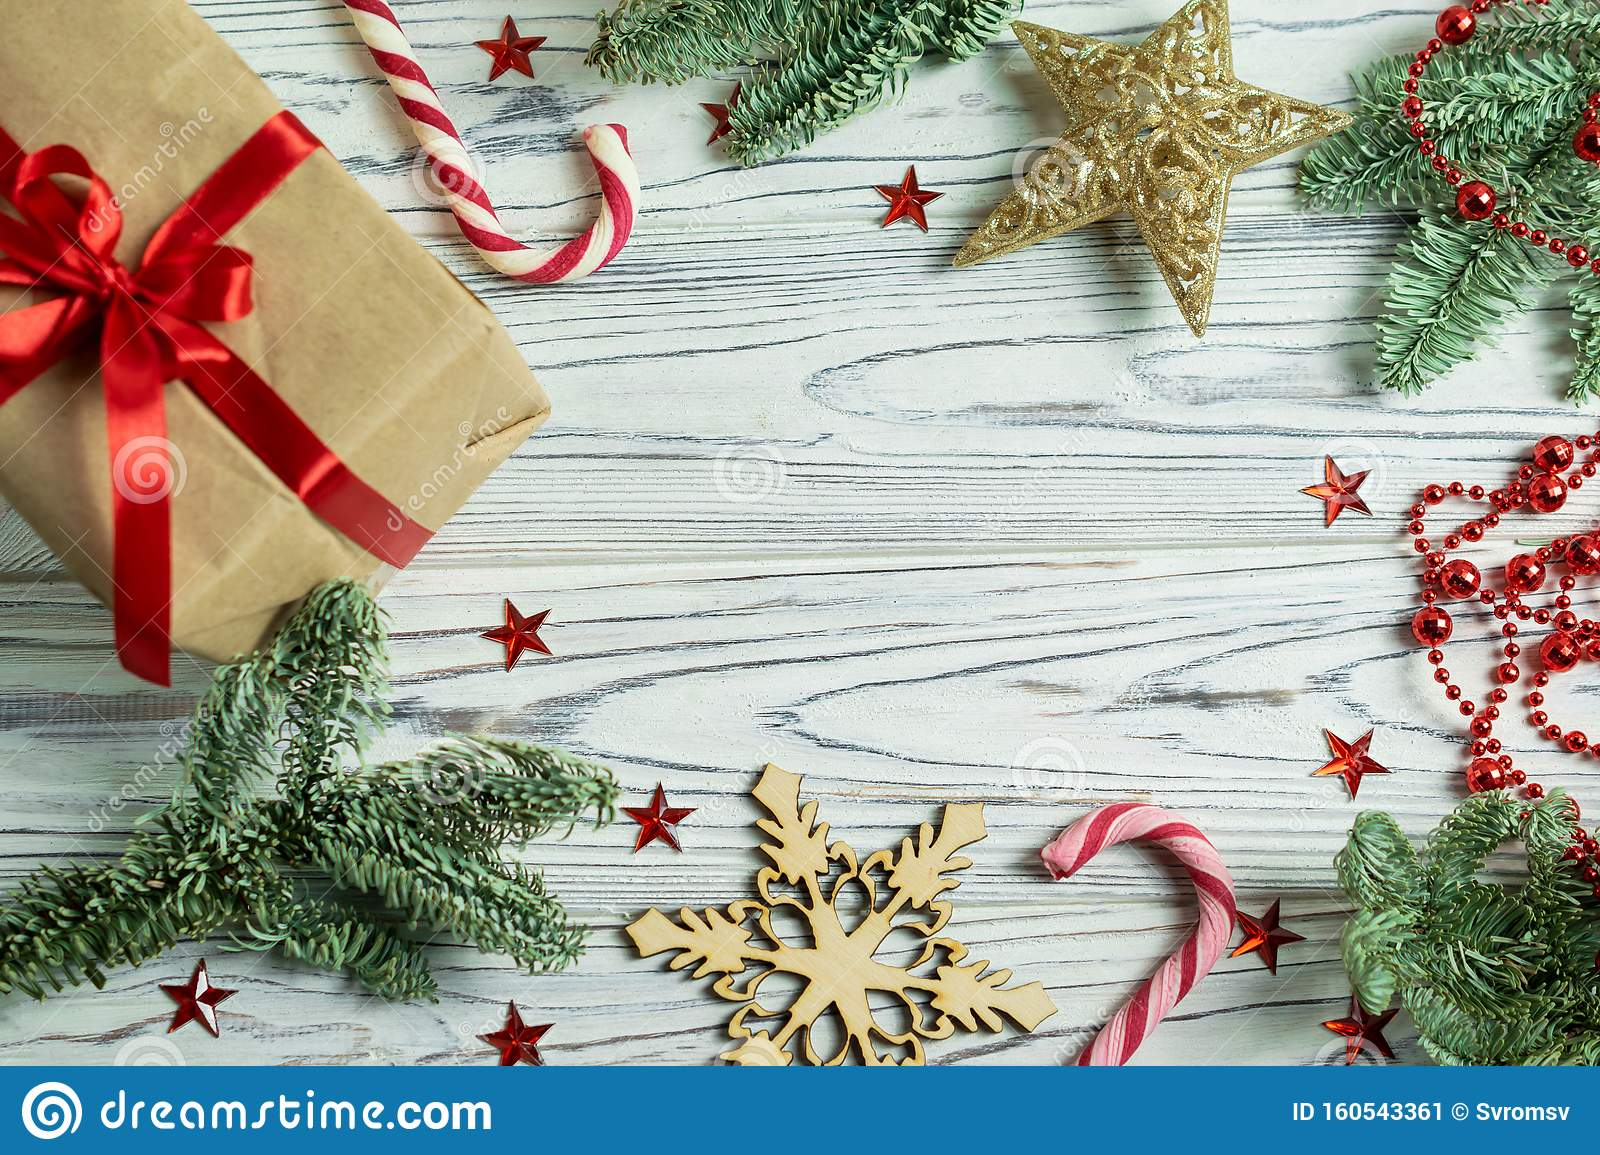 Christmas Frame Decorations With Fir Tree Branches